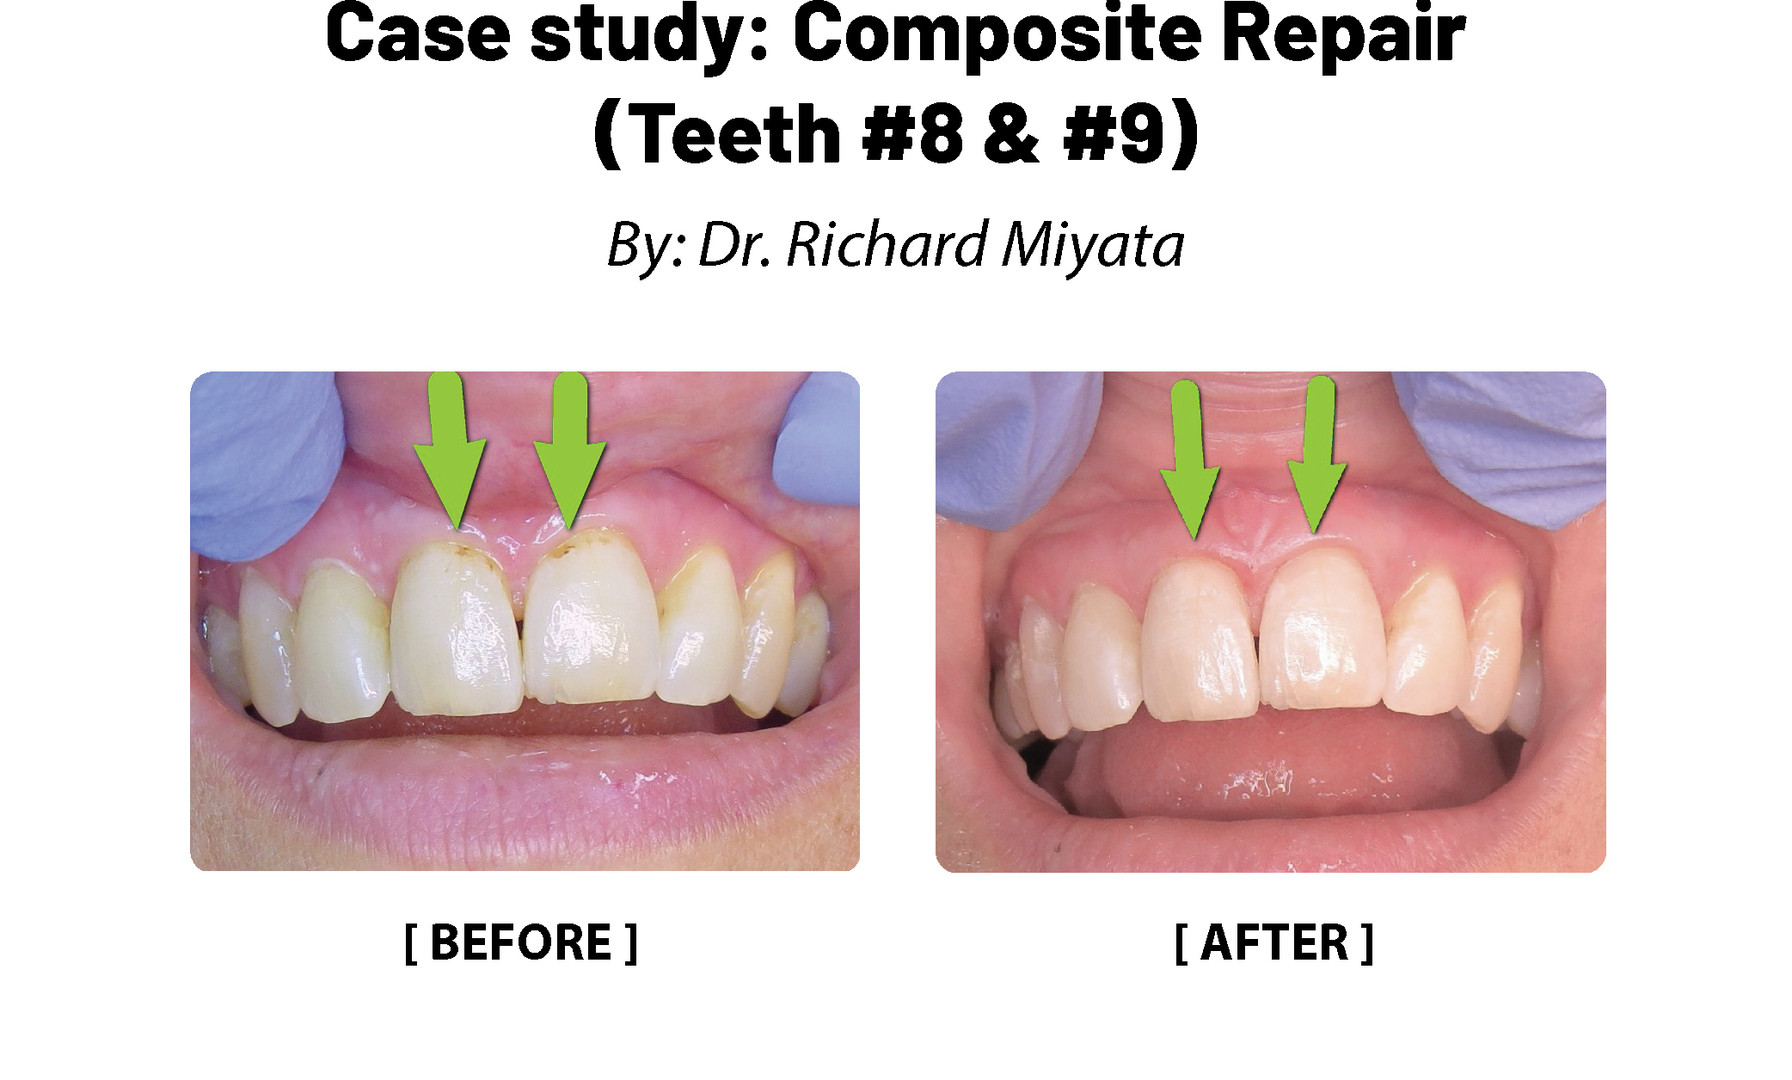 Case Study: Composite Repair (Teeth #8, 9)